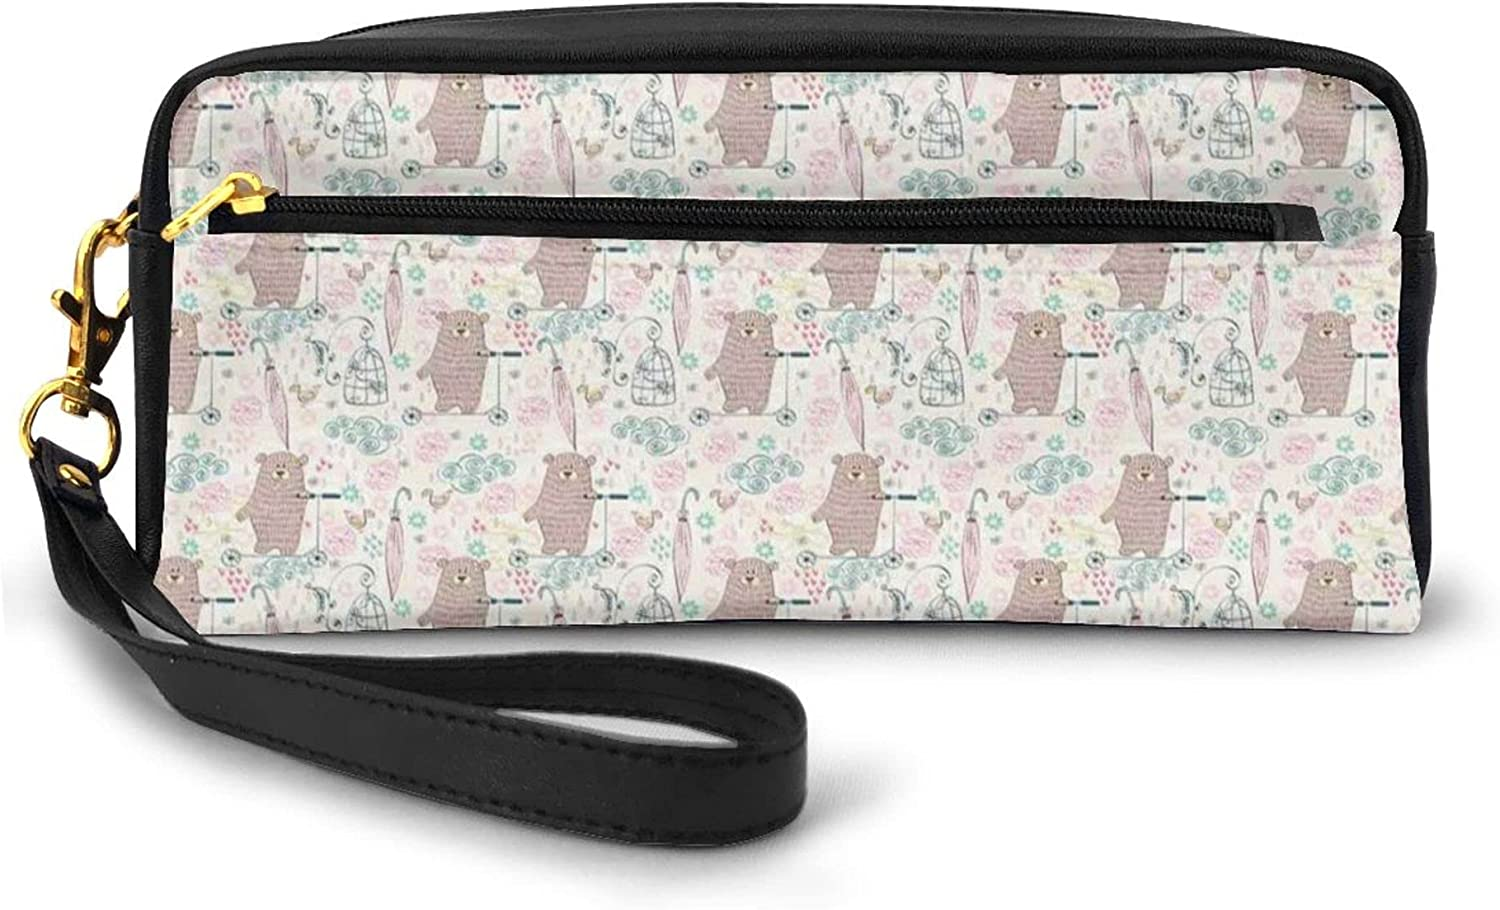 Pencil Case Big Capacity,Cartoon Bear On A Scooter Childish Kids Design Illustration Flowers And Birds,Pen Bag with Zipper Bag for Boy Girl